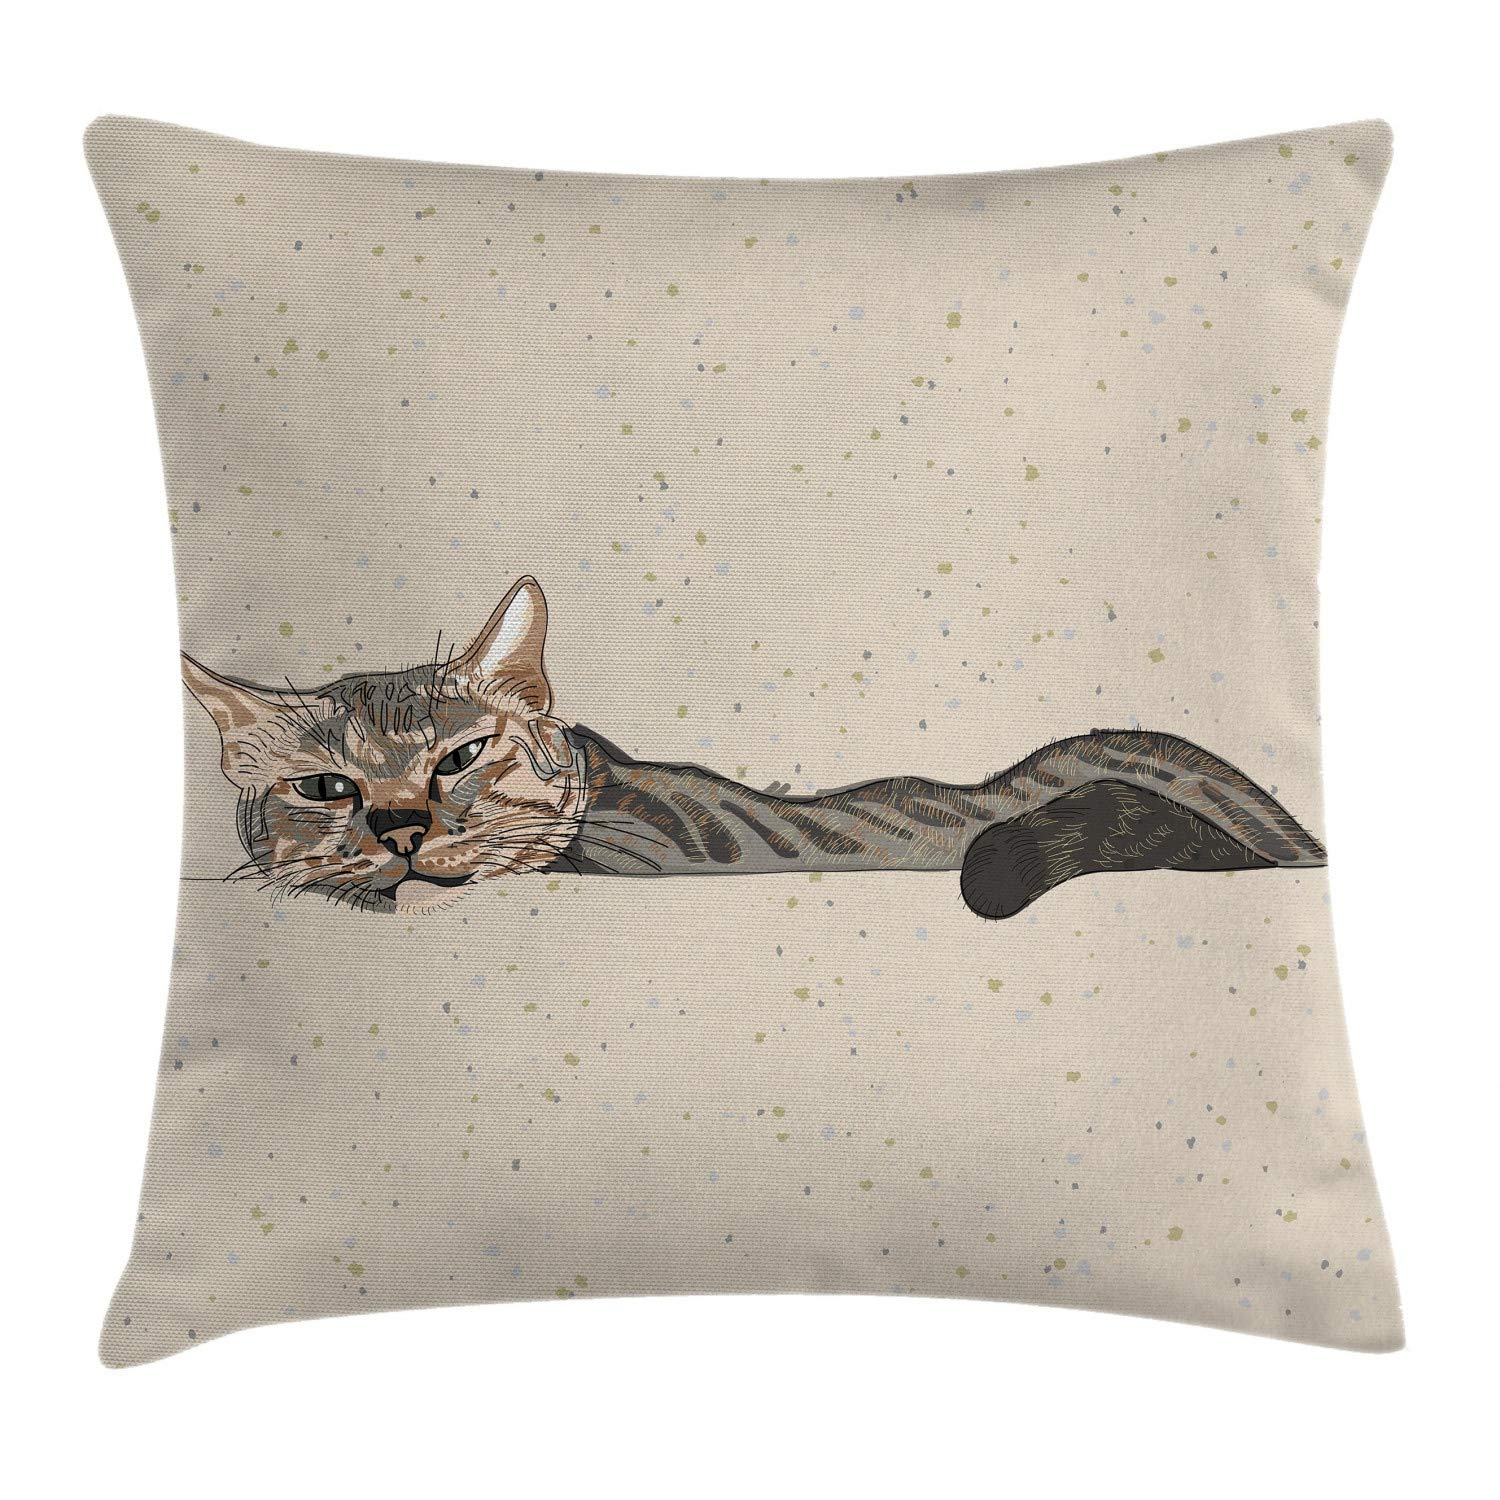 Ambesonne Cat Throw Pillow Cushion Cover, Lazy Sleepy Cat Figure in Earth Tones Cute Furry Mascot Indoor Pet Art Illustration, Decorative Square Accent Pillow Case, 18 X 18 inches, Tan Dimgrey